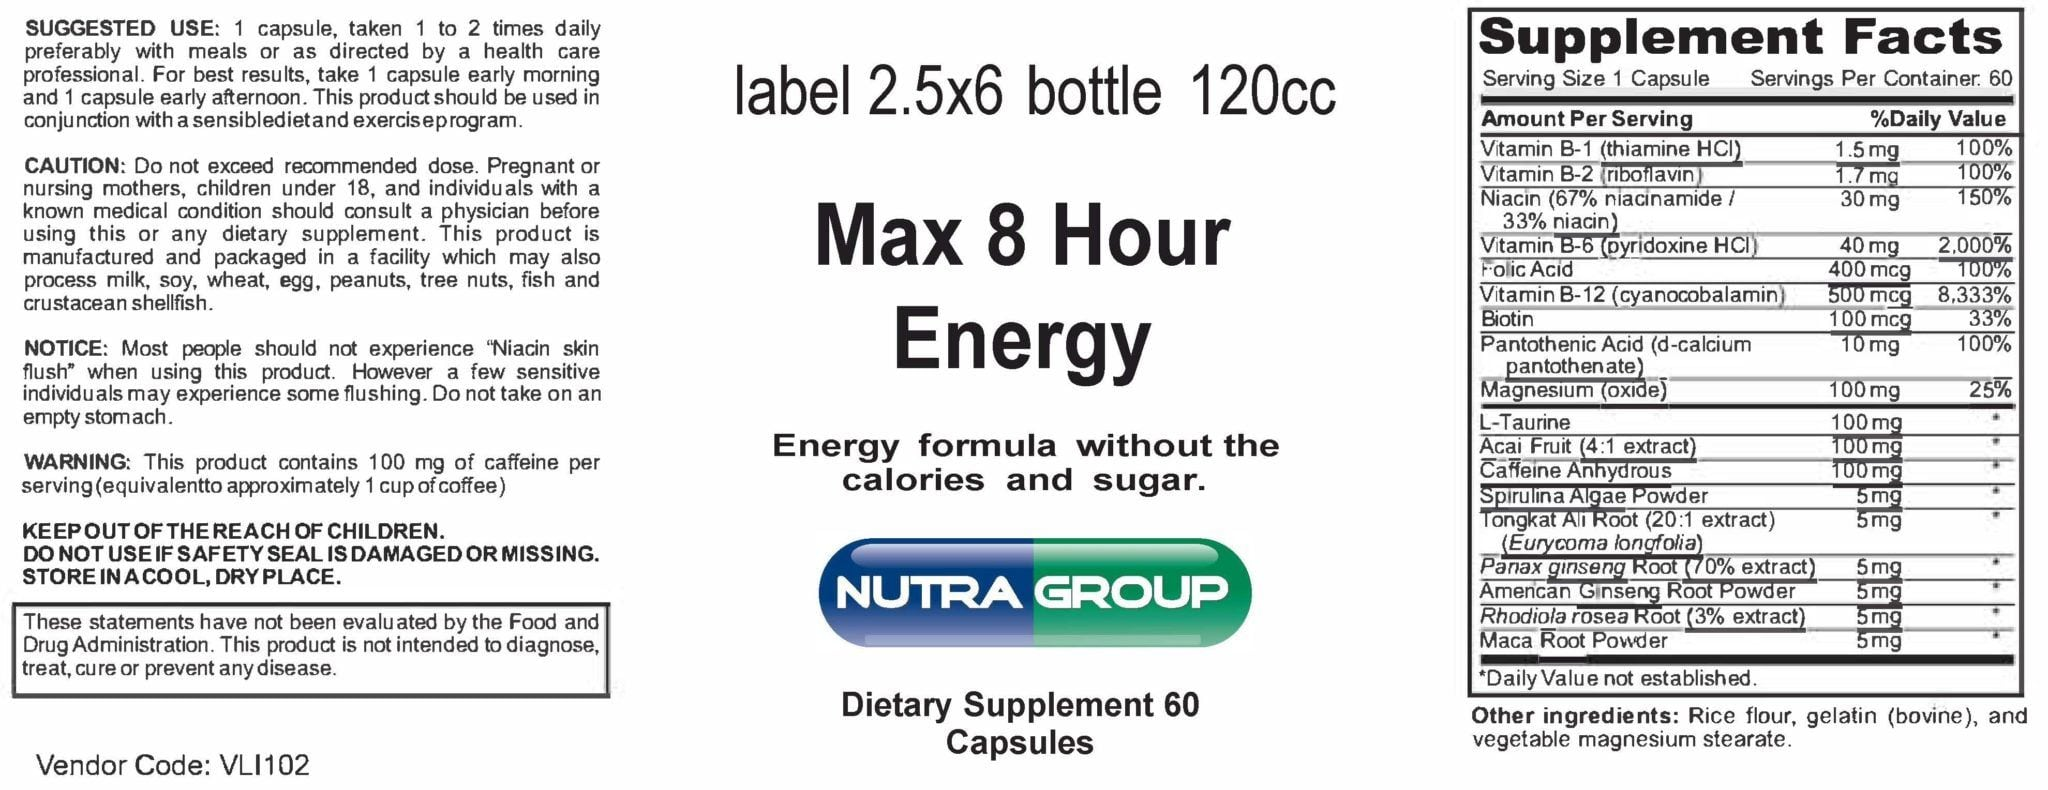 Private label Max 8 Hour Energy supplement